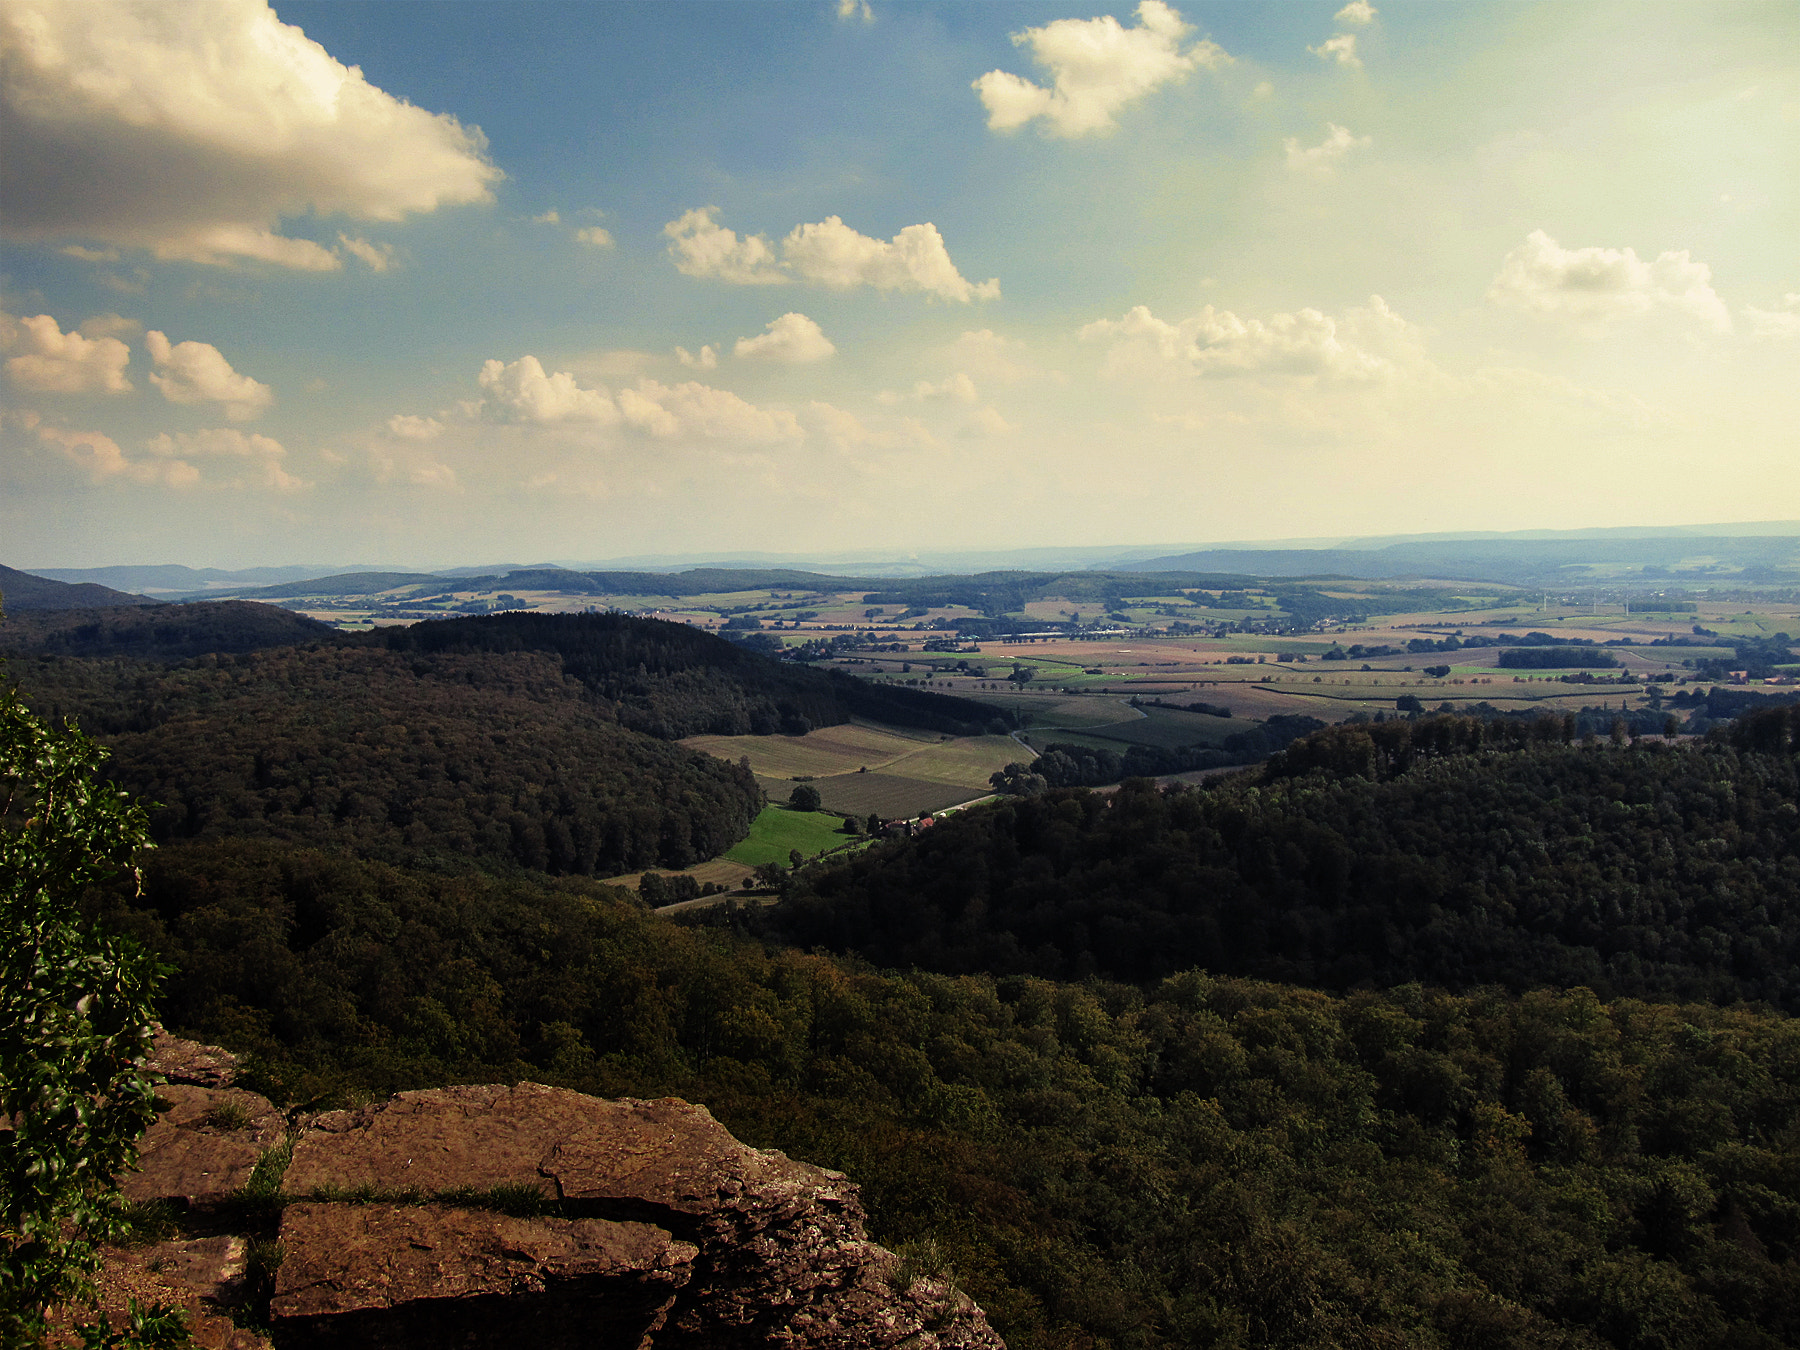 Photograph view from hohenstein by Sascha Hupe on 500px